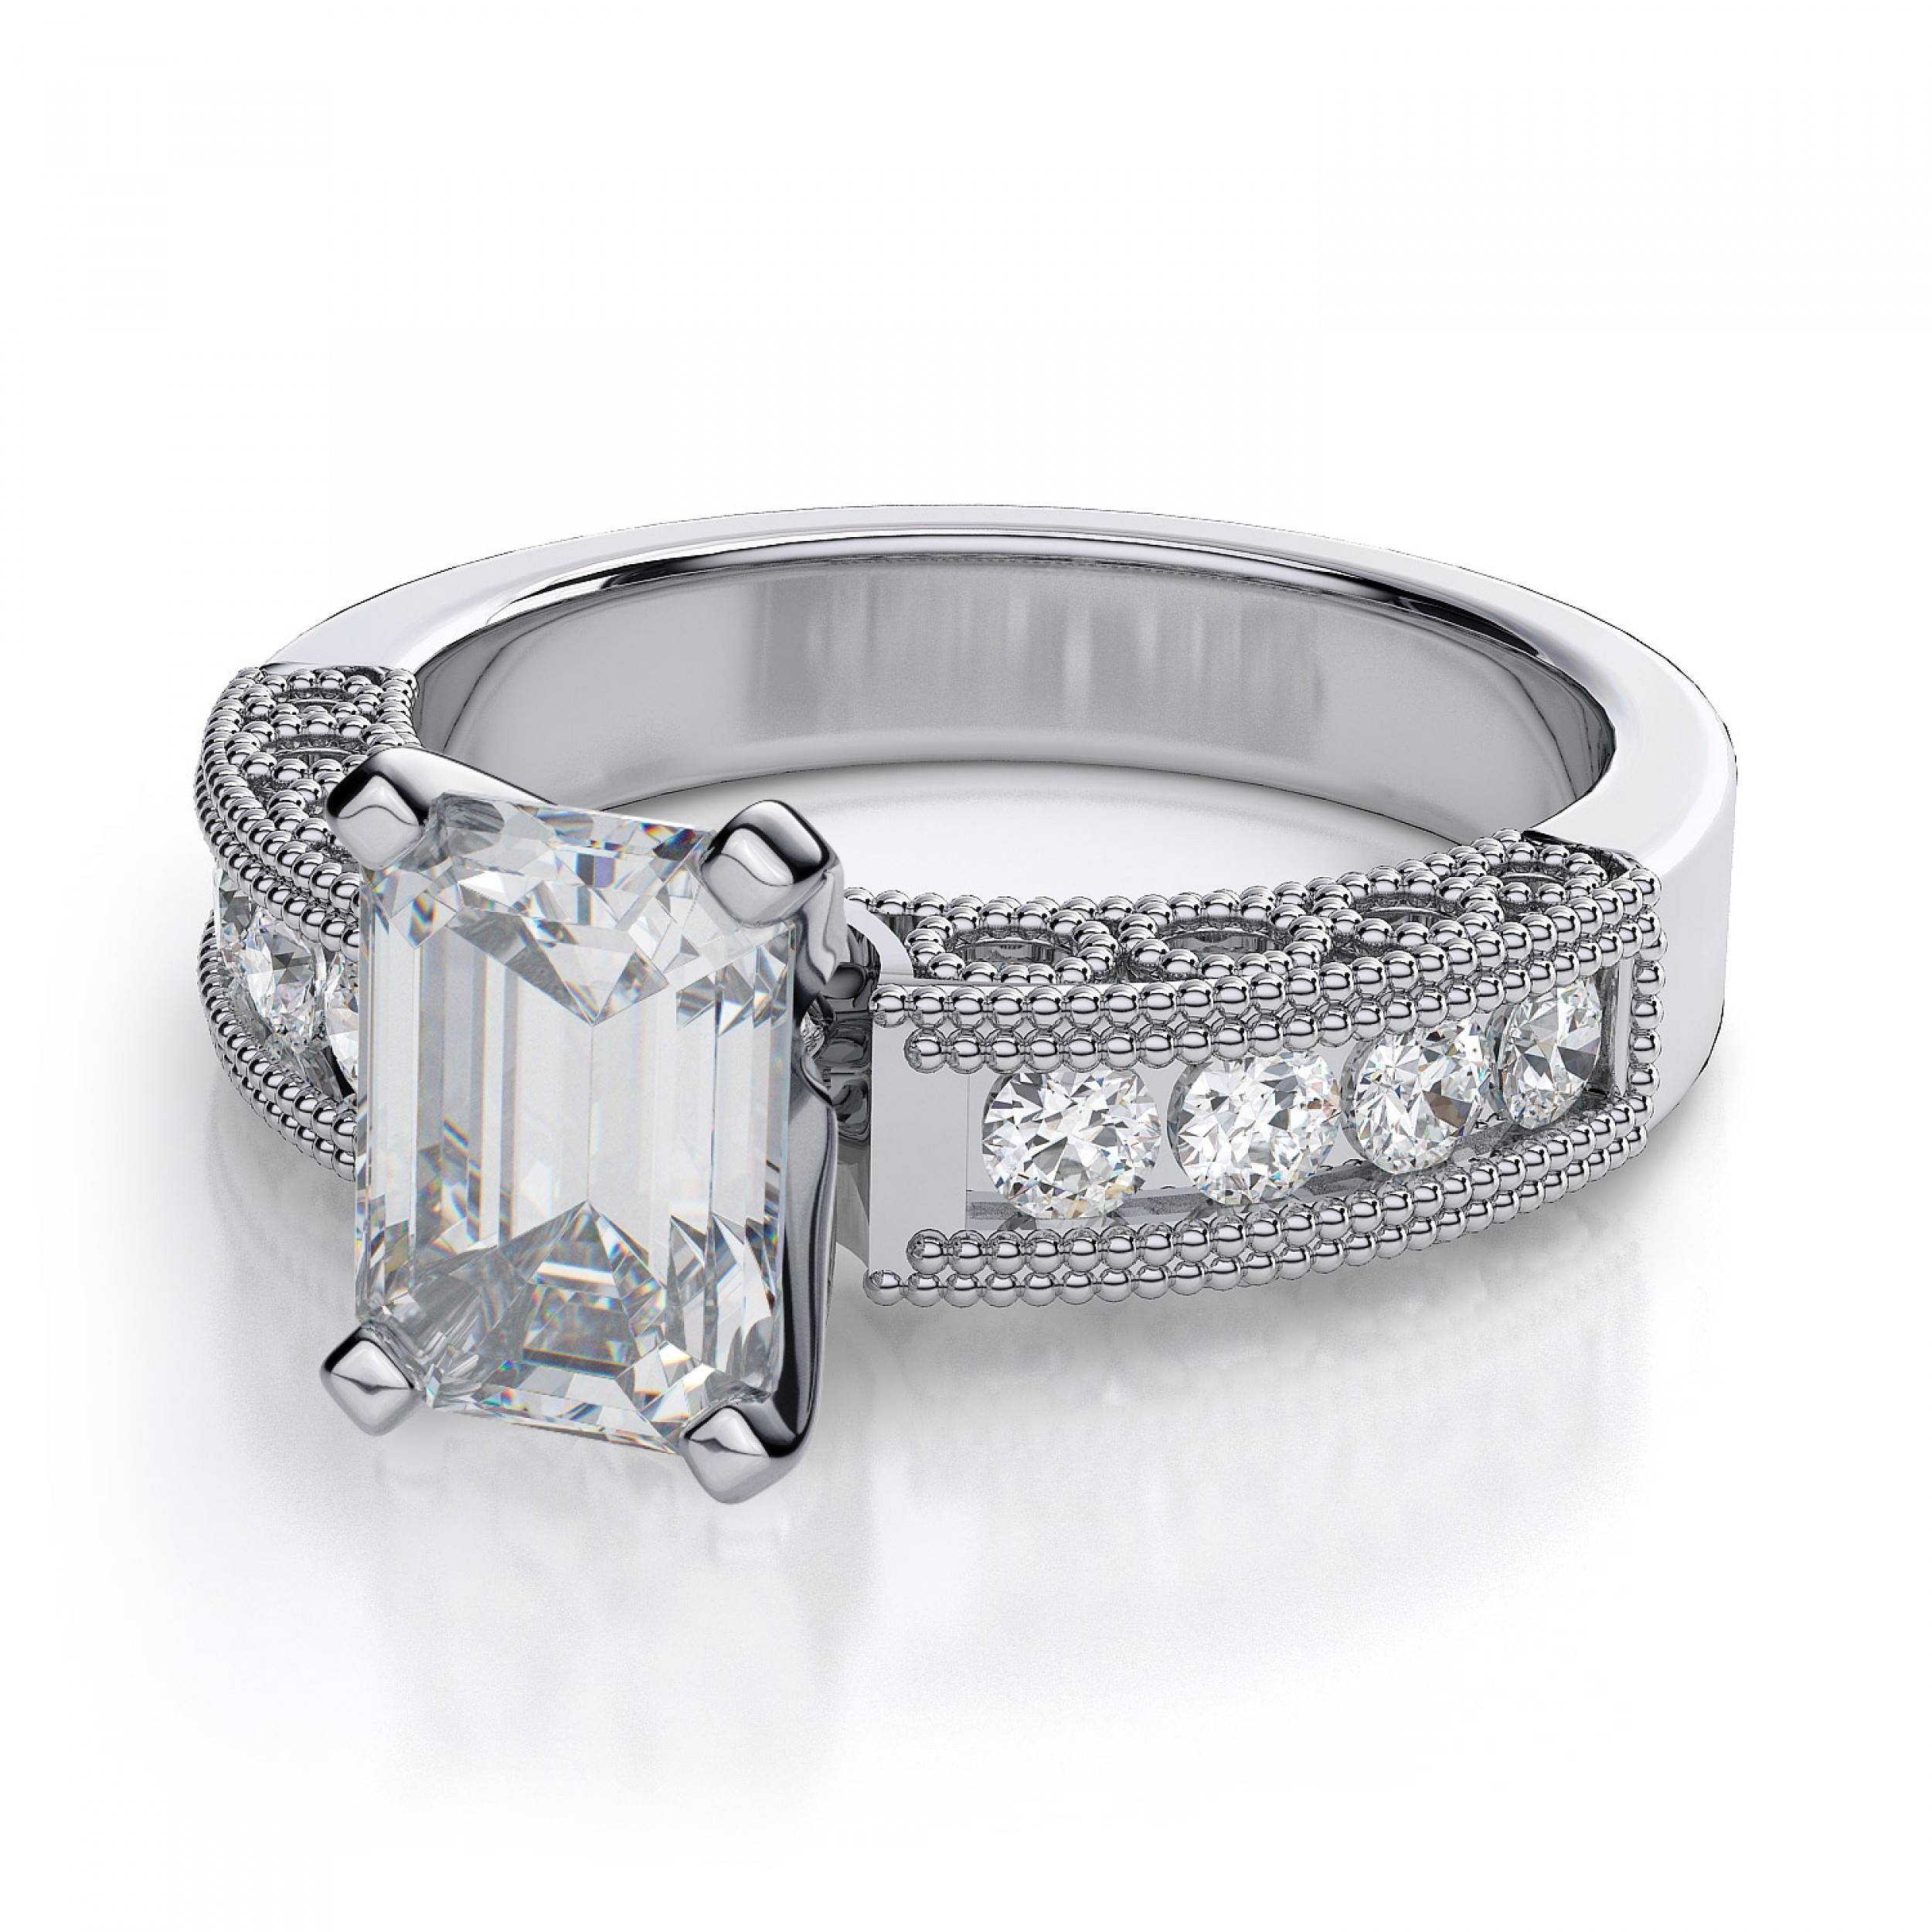 40Ctw Vintage Emerald Cut Sidestones Diamond Engagement Ring In Platinum Wedding Rings Settings (View 4 of 15)